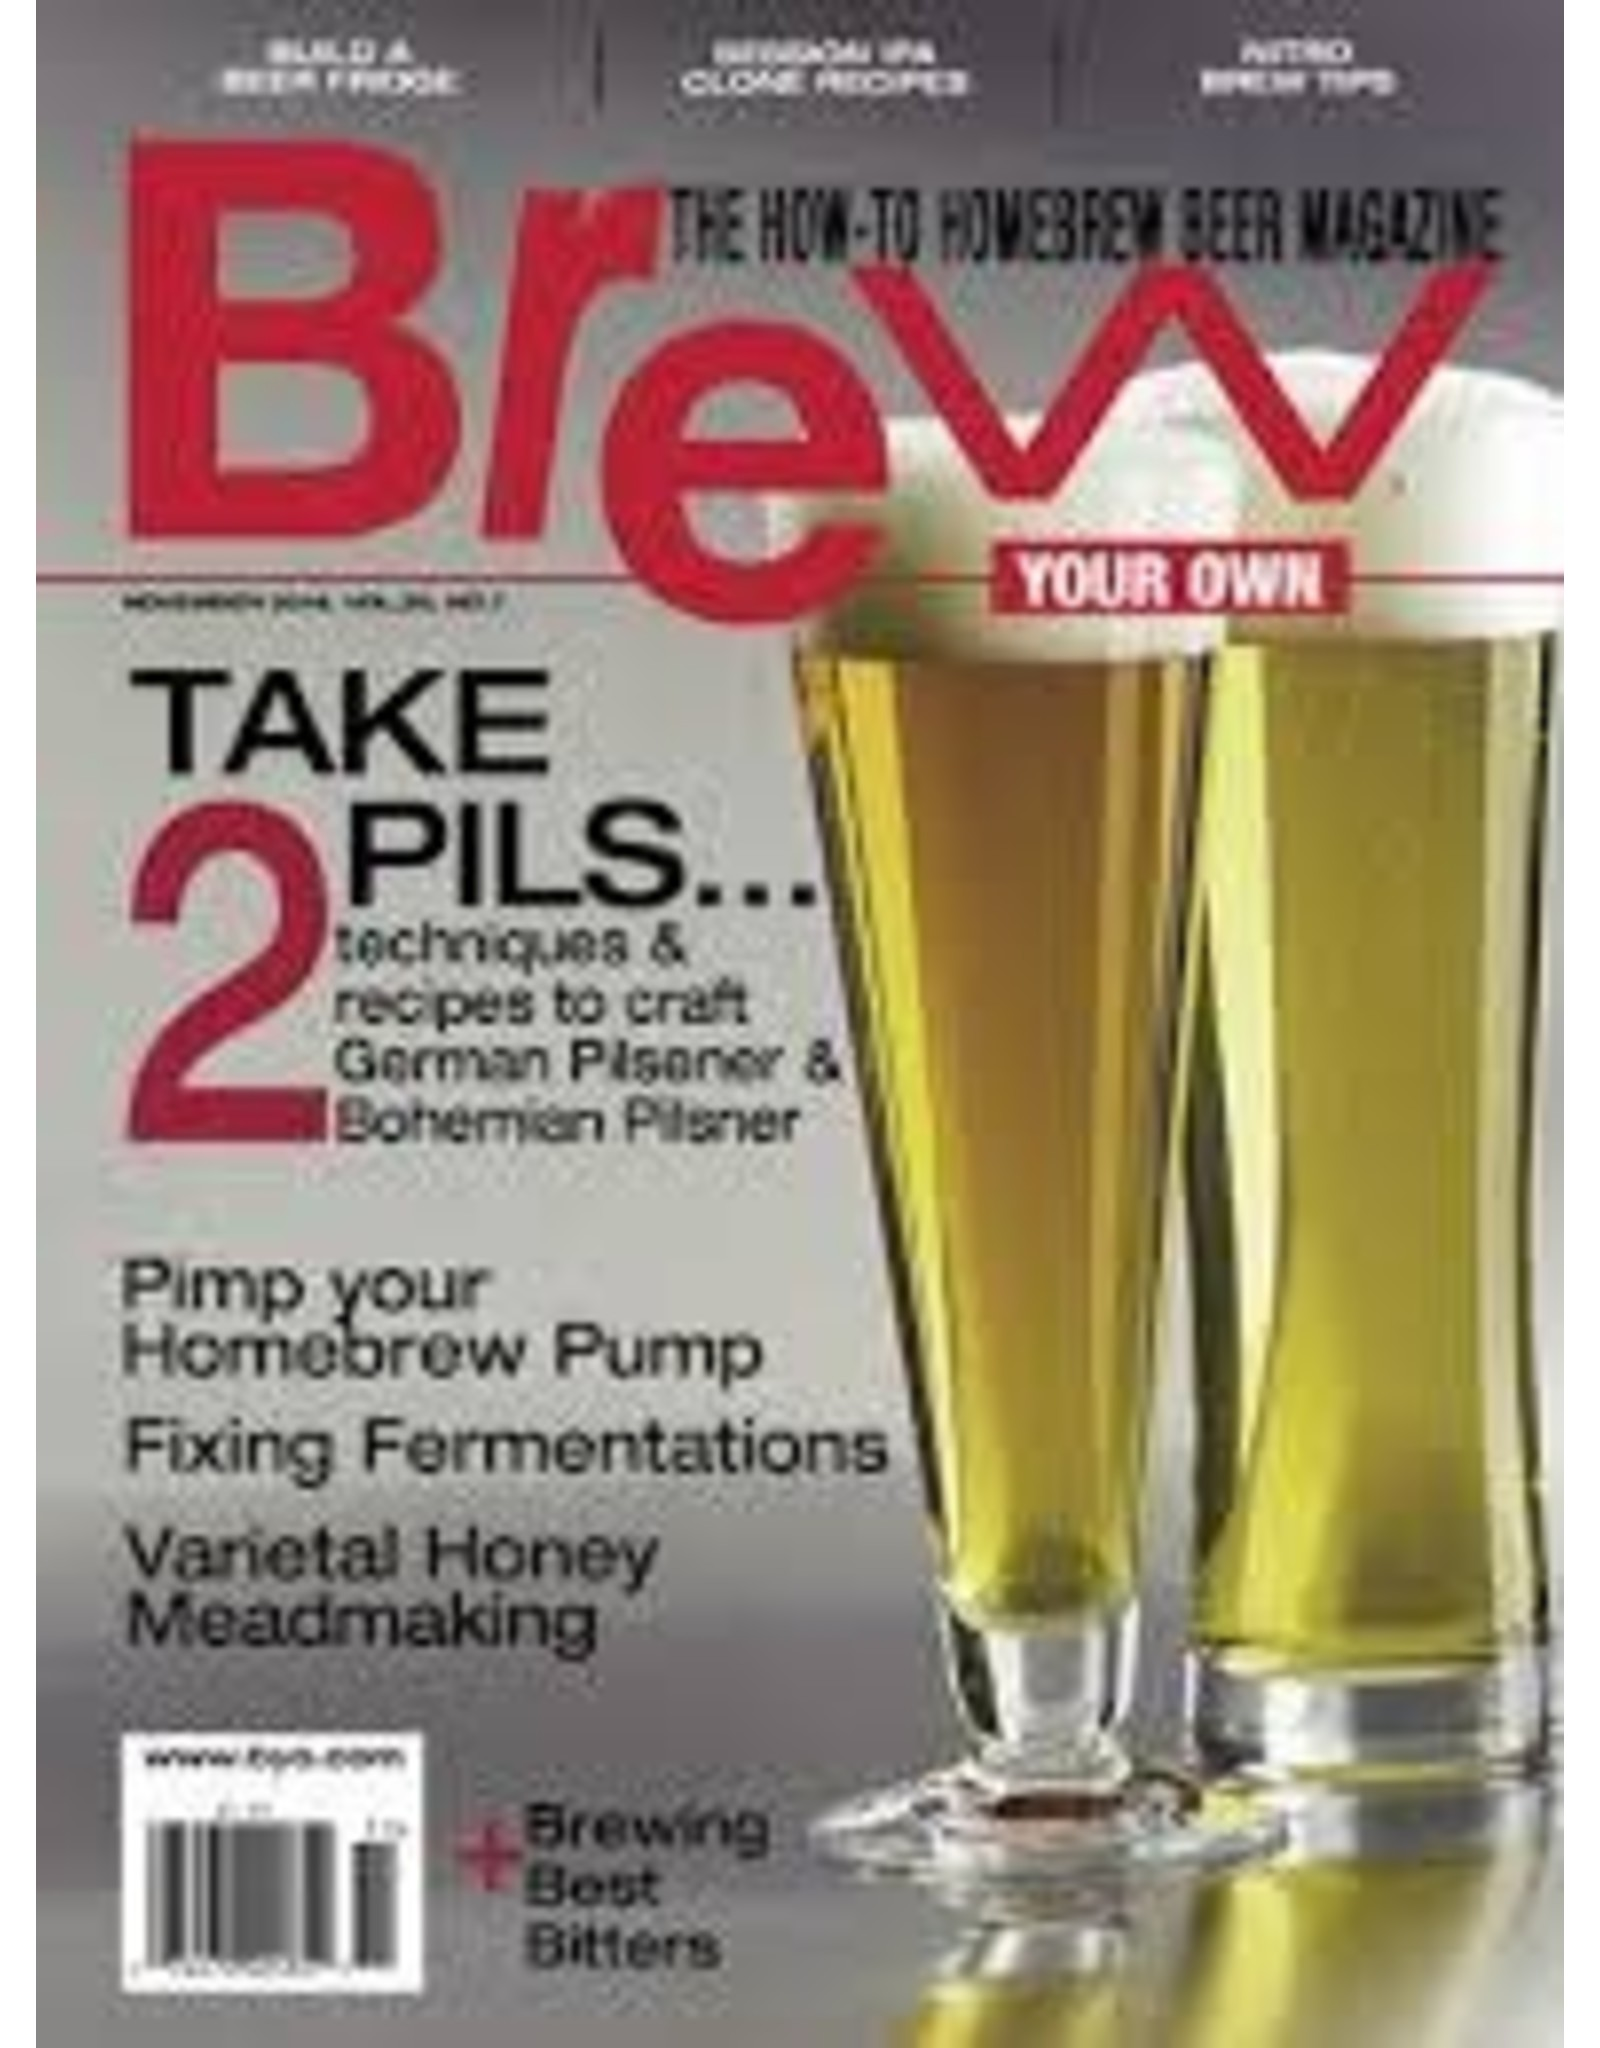 BREW YOUR OWN NOVEMBER 2014